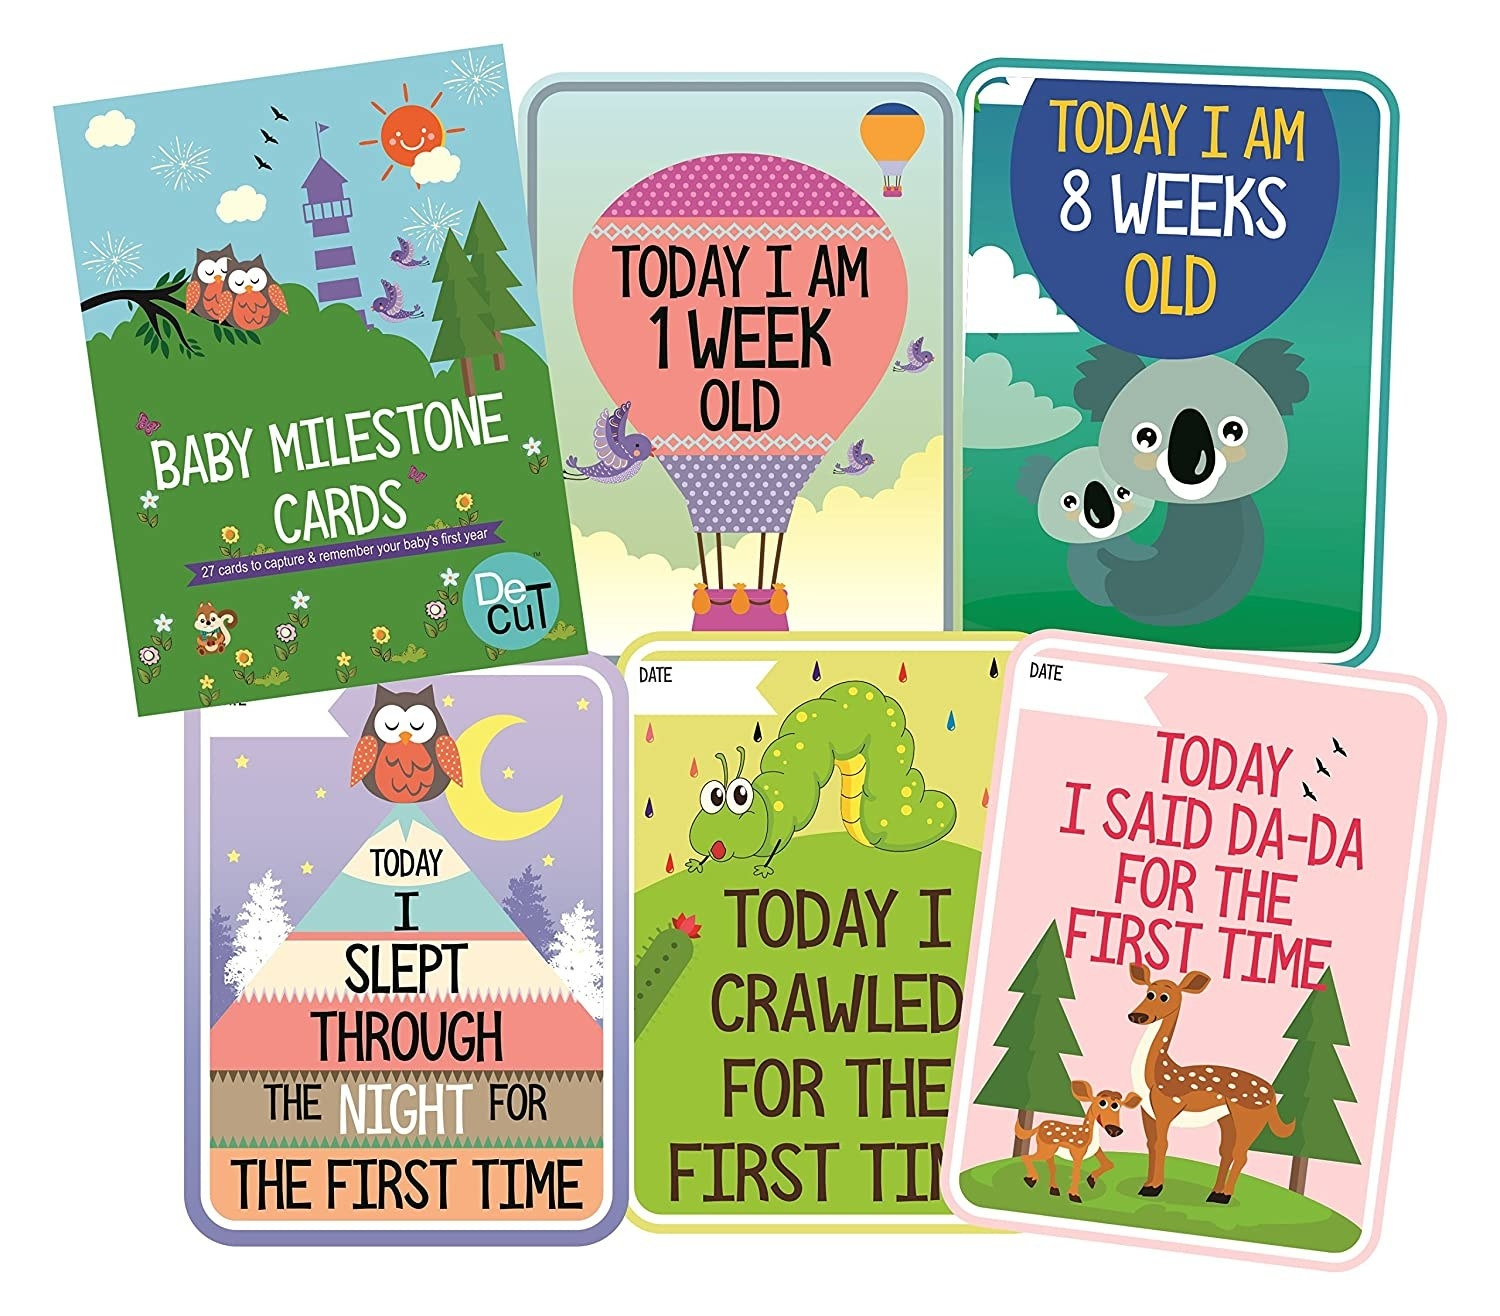 """Colourful milestone cards with phrases like, """"Today I crawled for the first time"""", """"Today I am 8 weeks old"""", and more."""